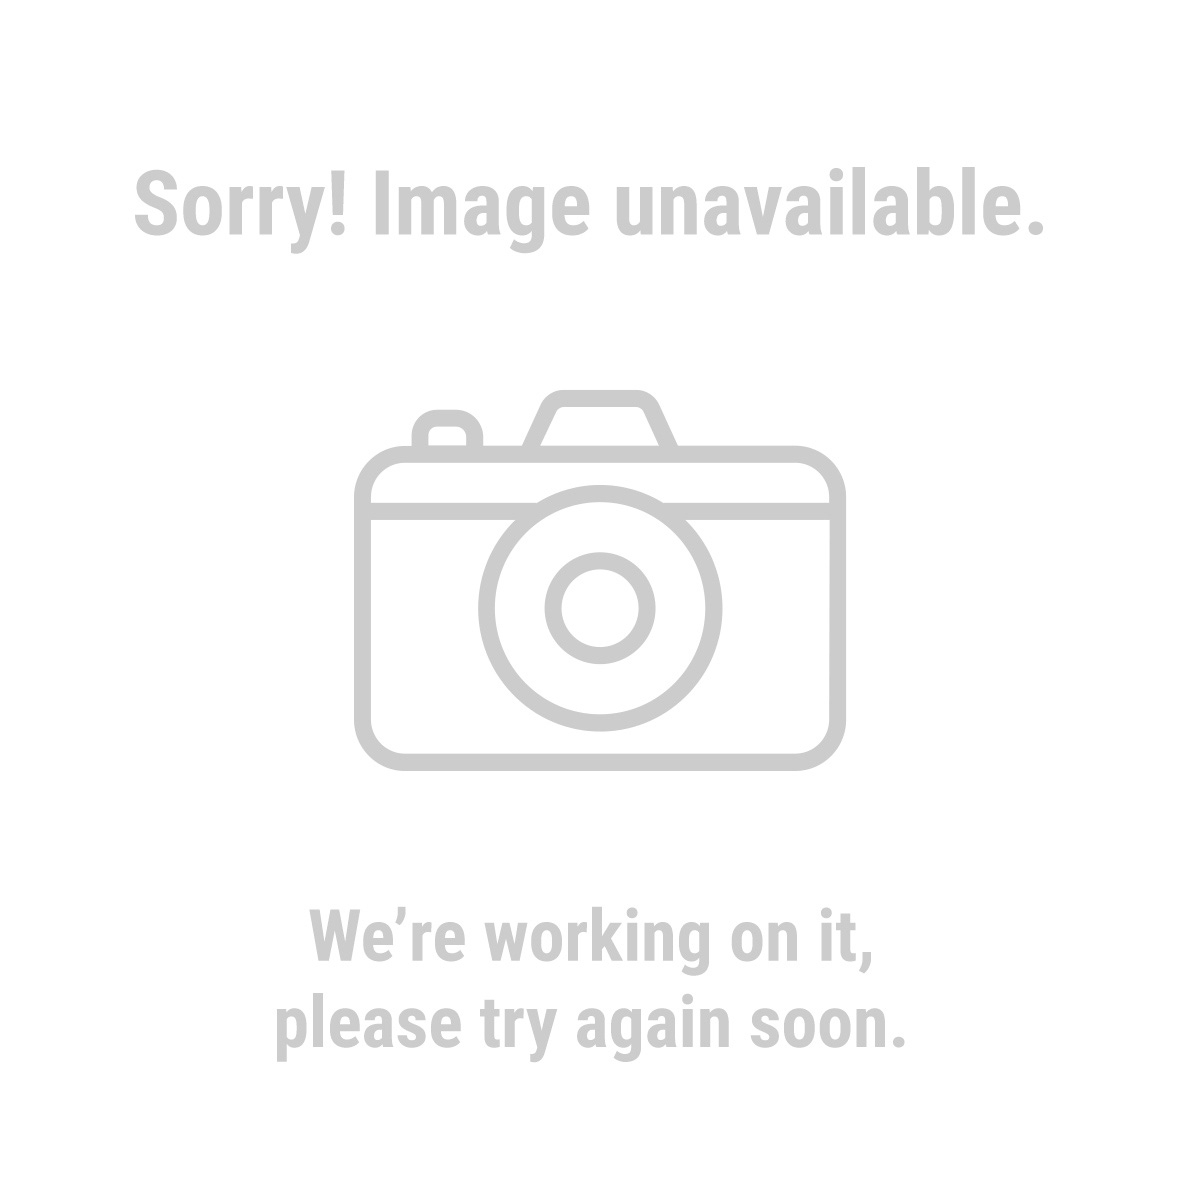 8 Bin Portable Parts Storage Case